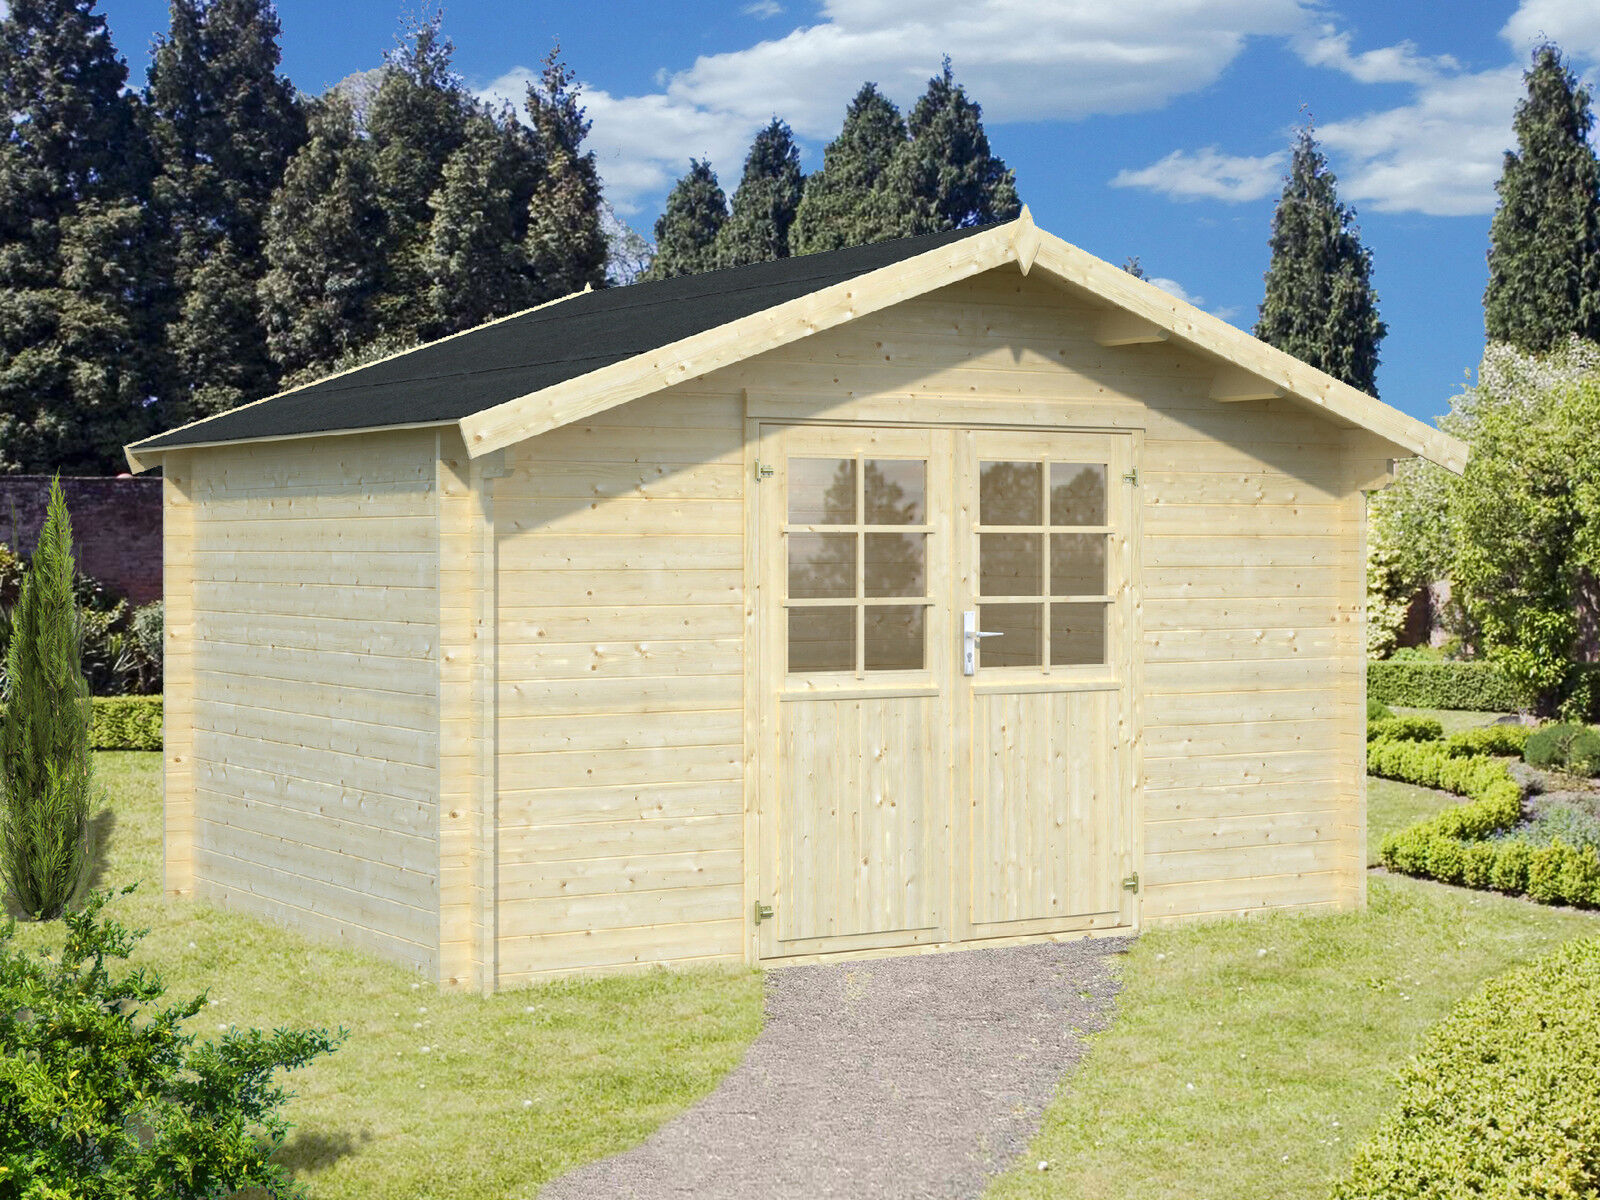 Gartenhütte Holz 34 Mm Summerhouse Greta Approx 4x3 M Shed Block House